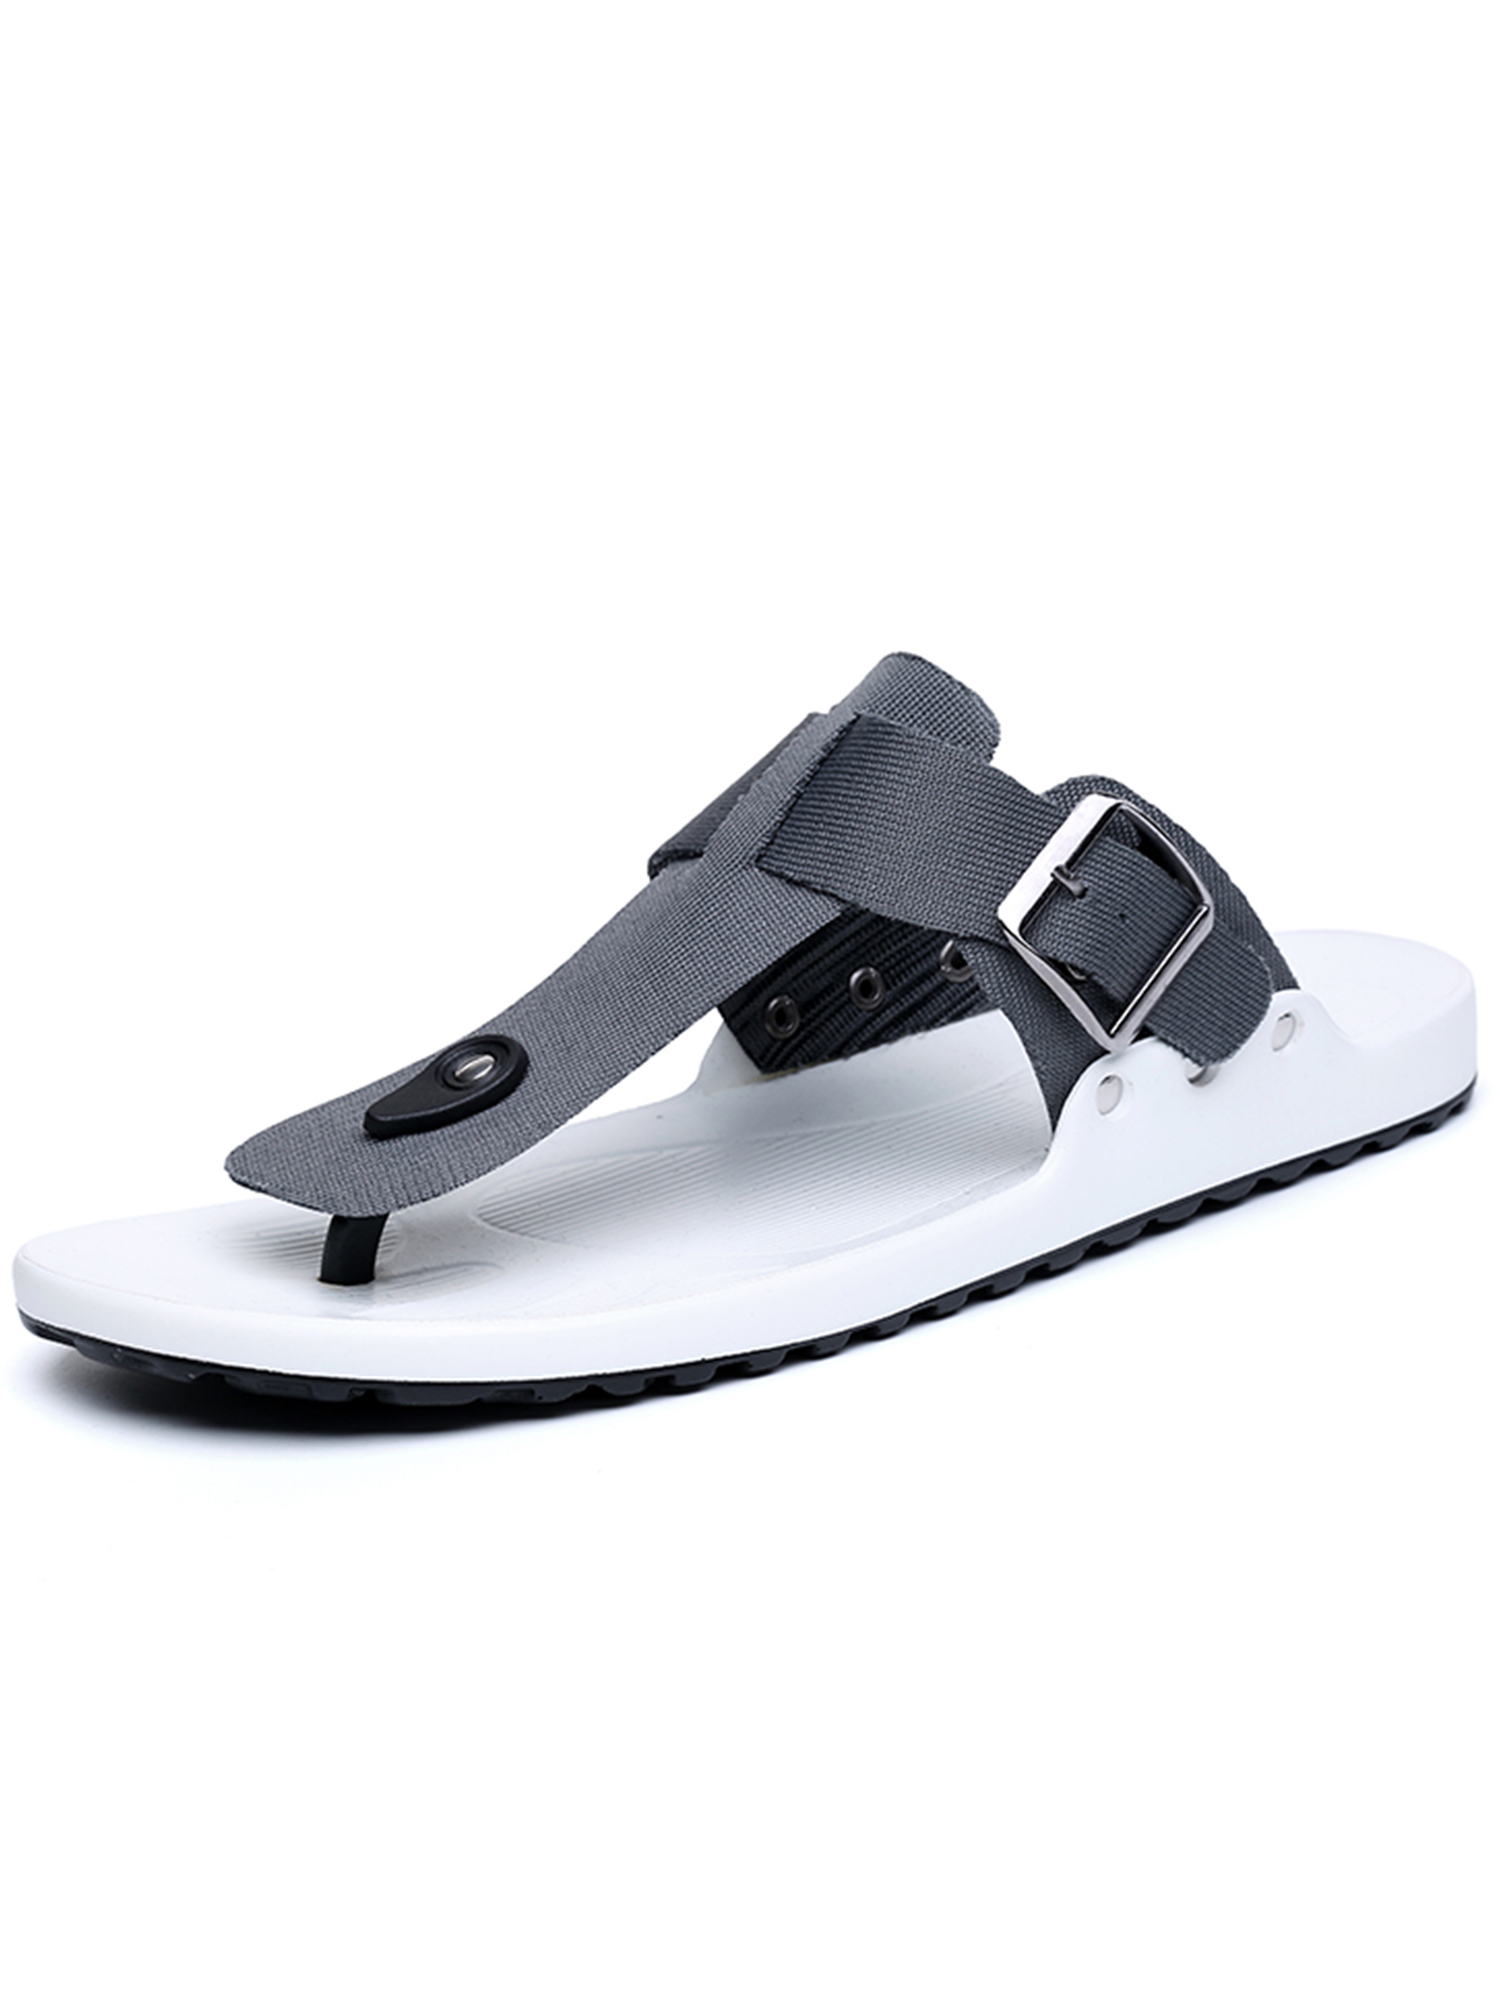 Men thong Flip Flop Flat Casual Sandals with Buckle Strap for Men